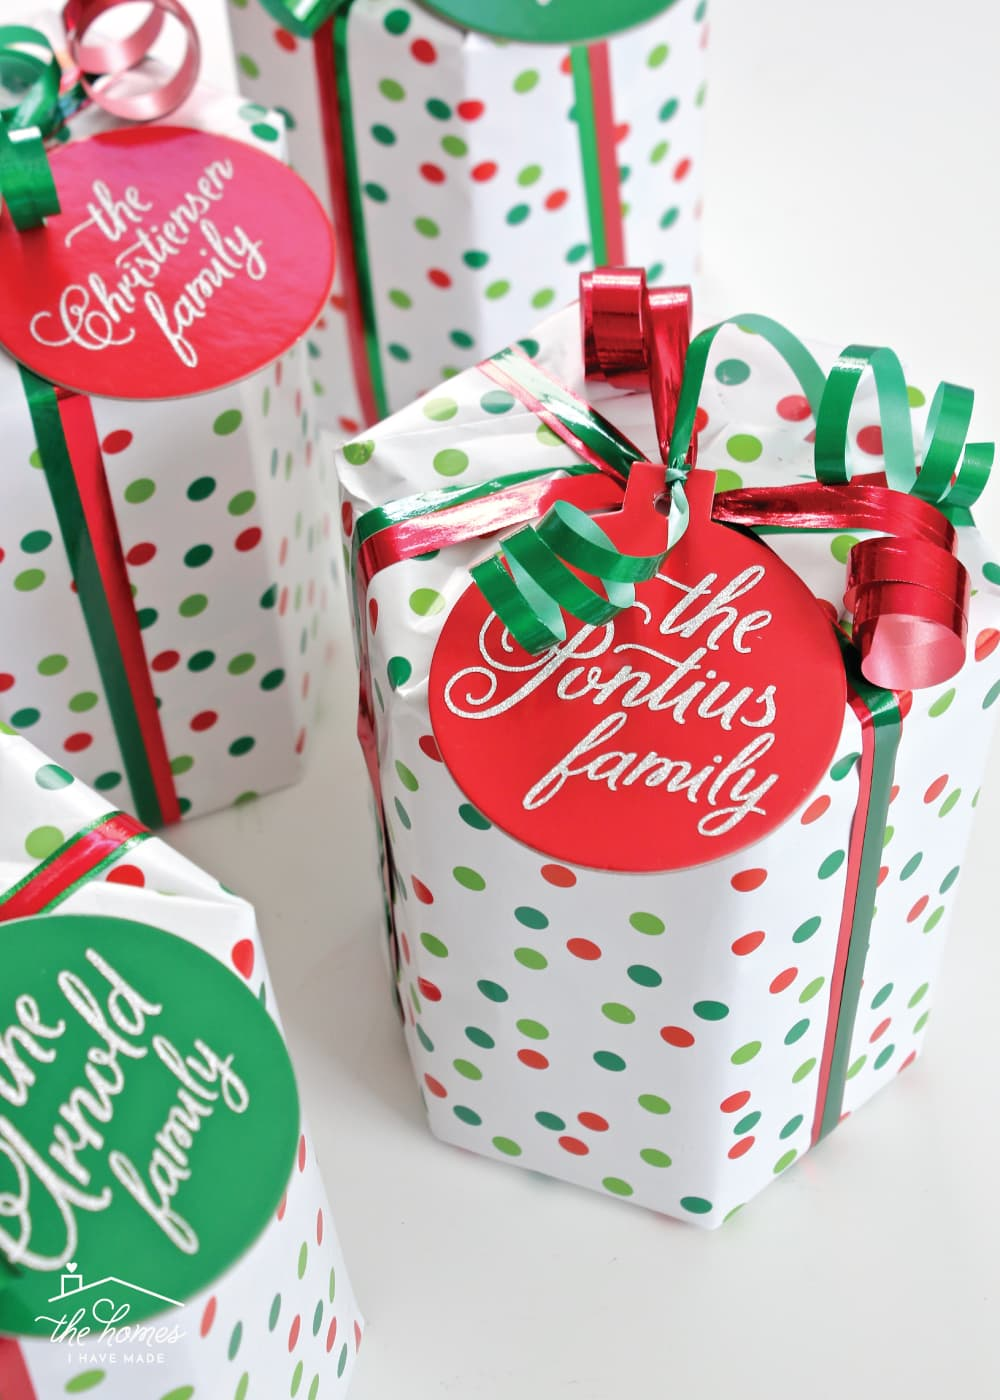 Looking for a quick, easy yet special gift for neighbors, teachers, co-workers and more? Check out this super easy personalized gift idea for anyone on your list!